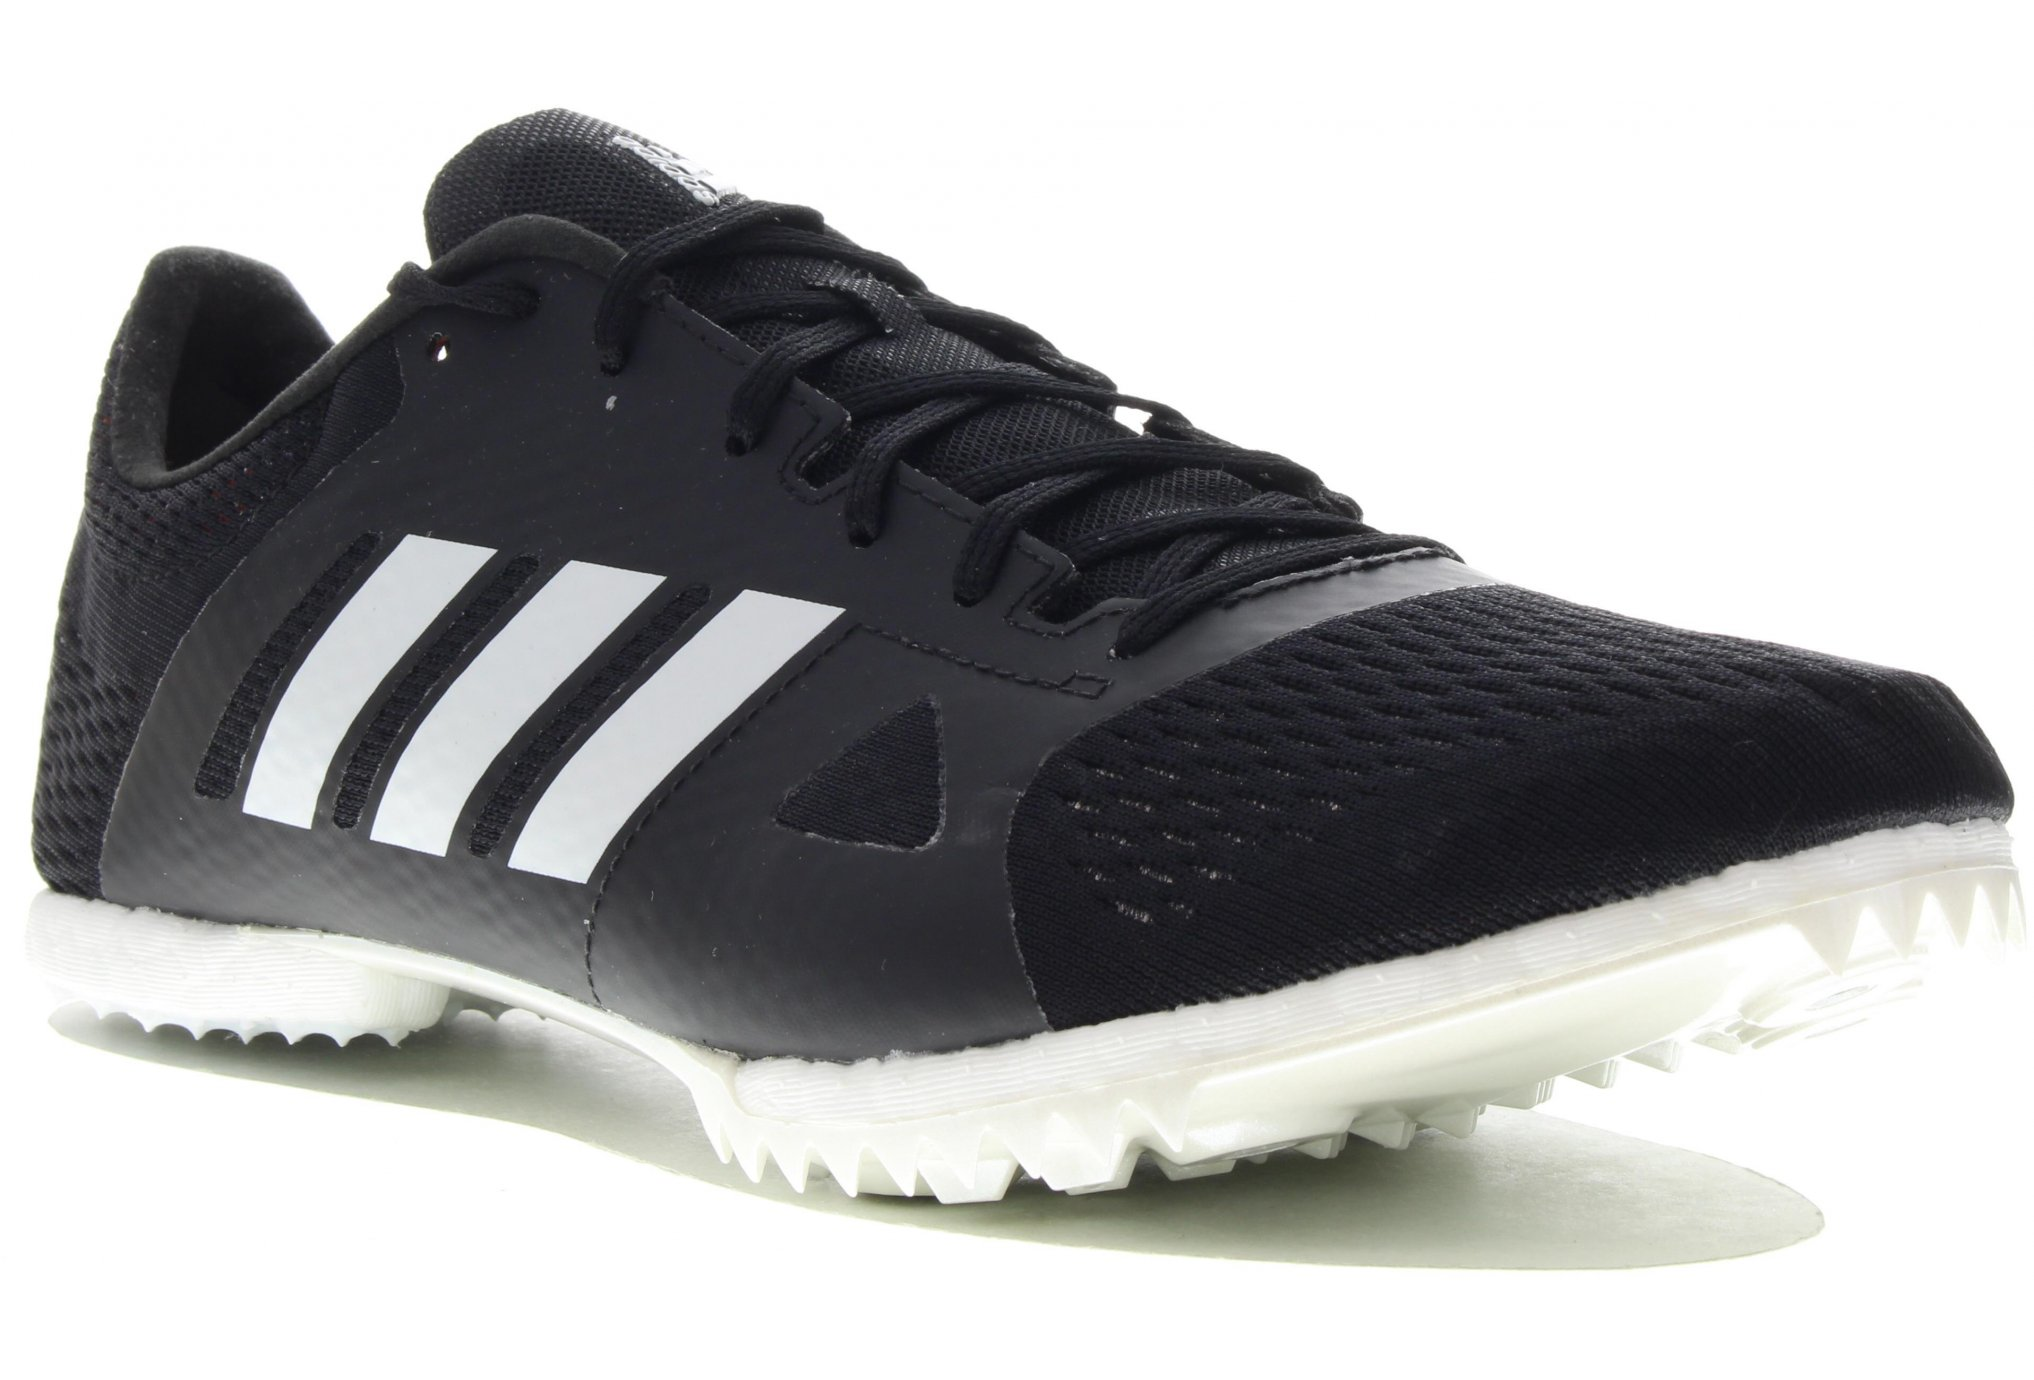 Adidas Adizero md boost m chaussures homme